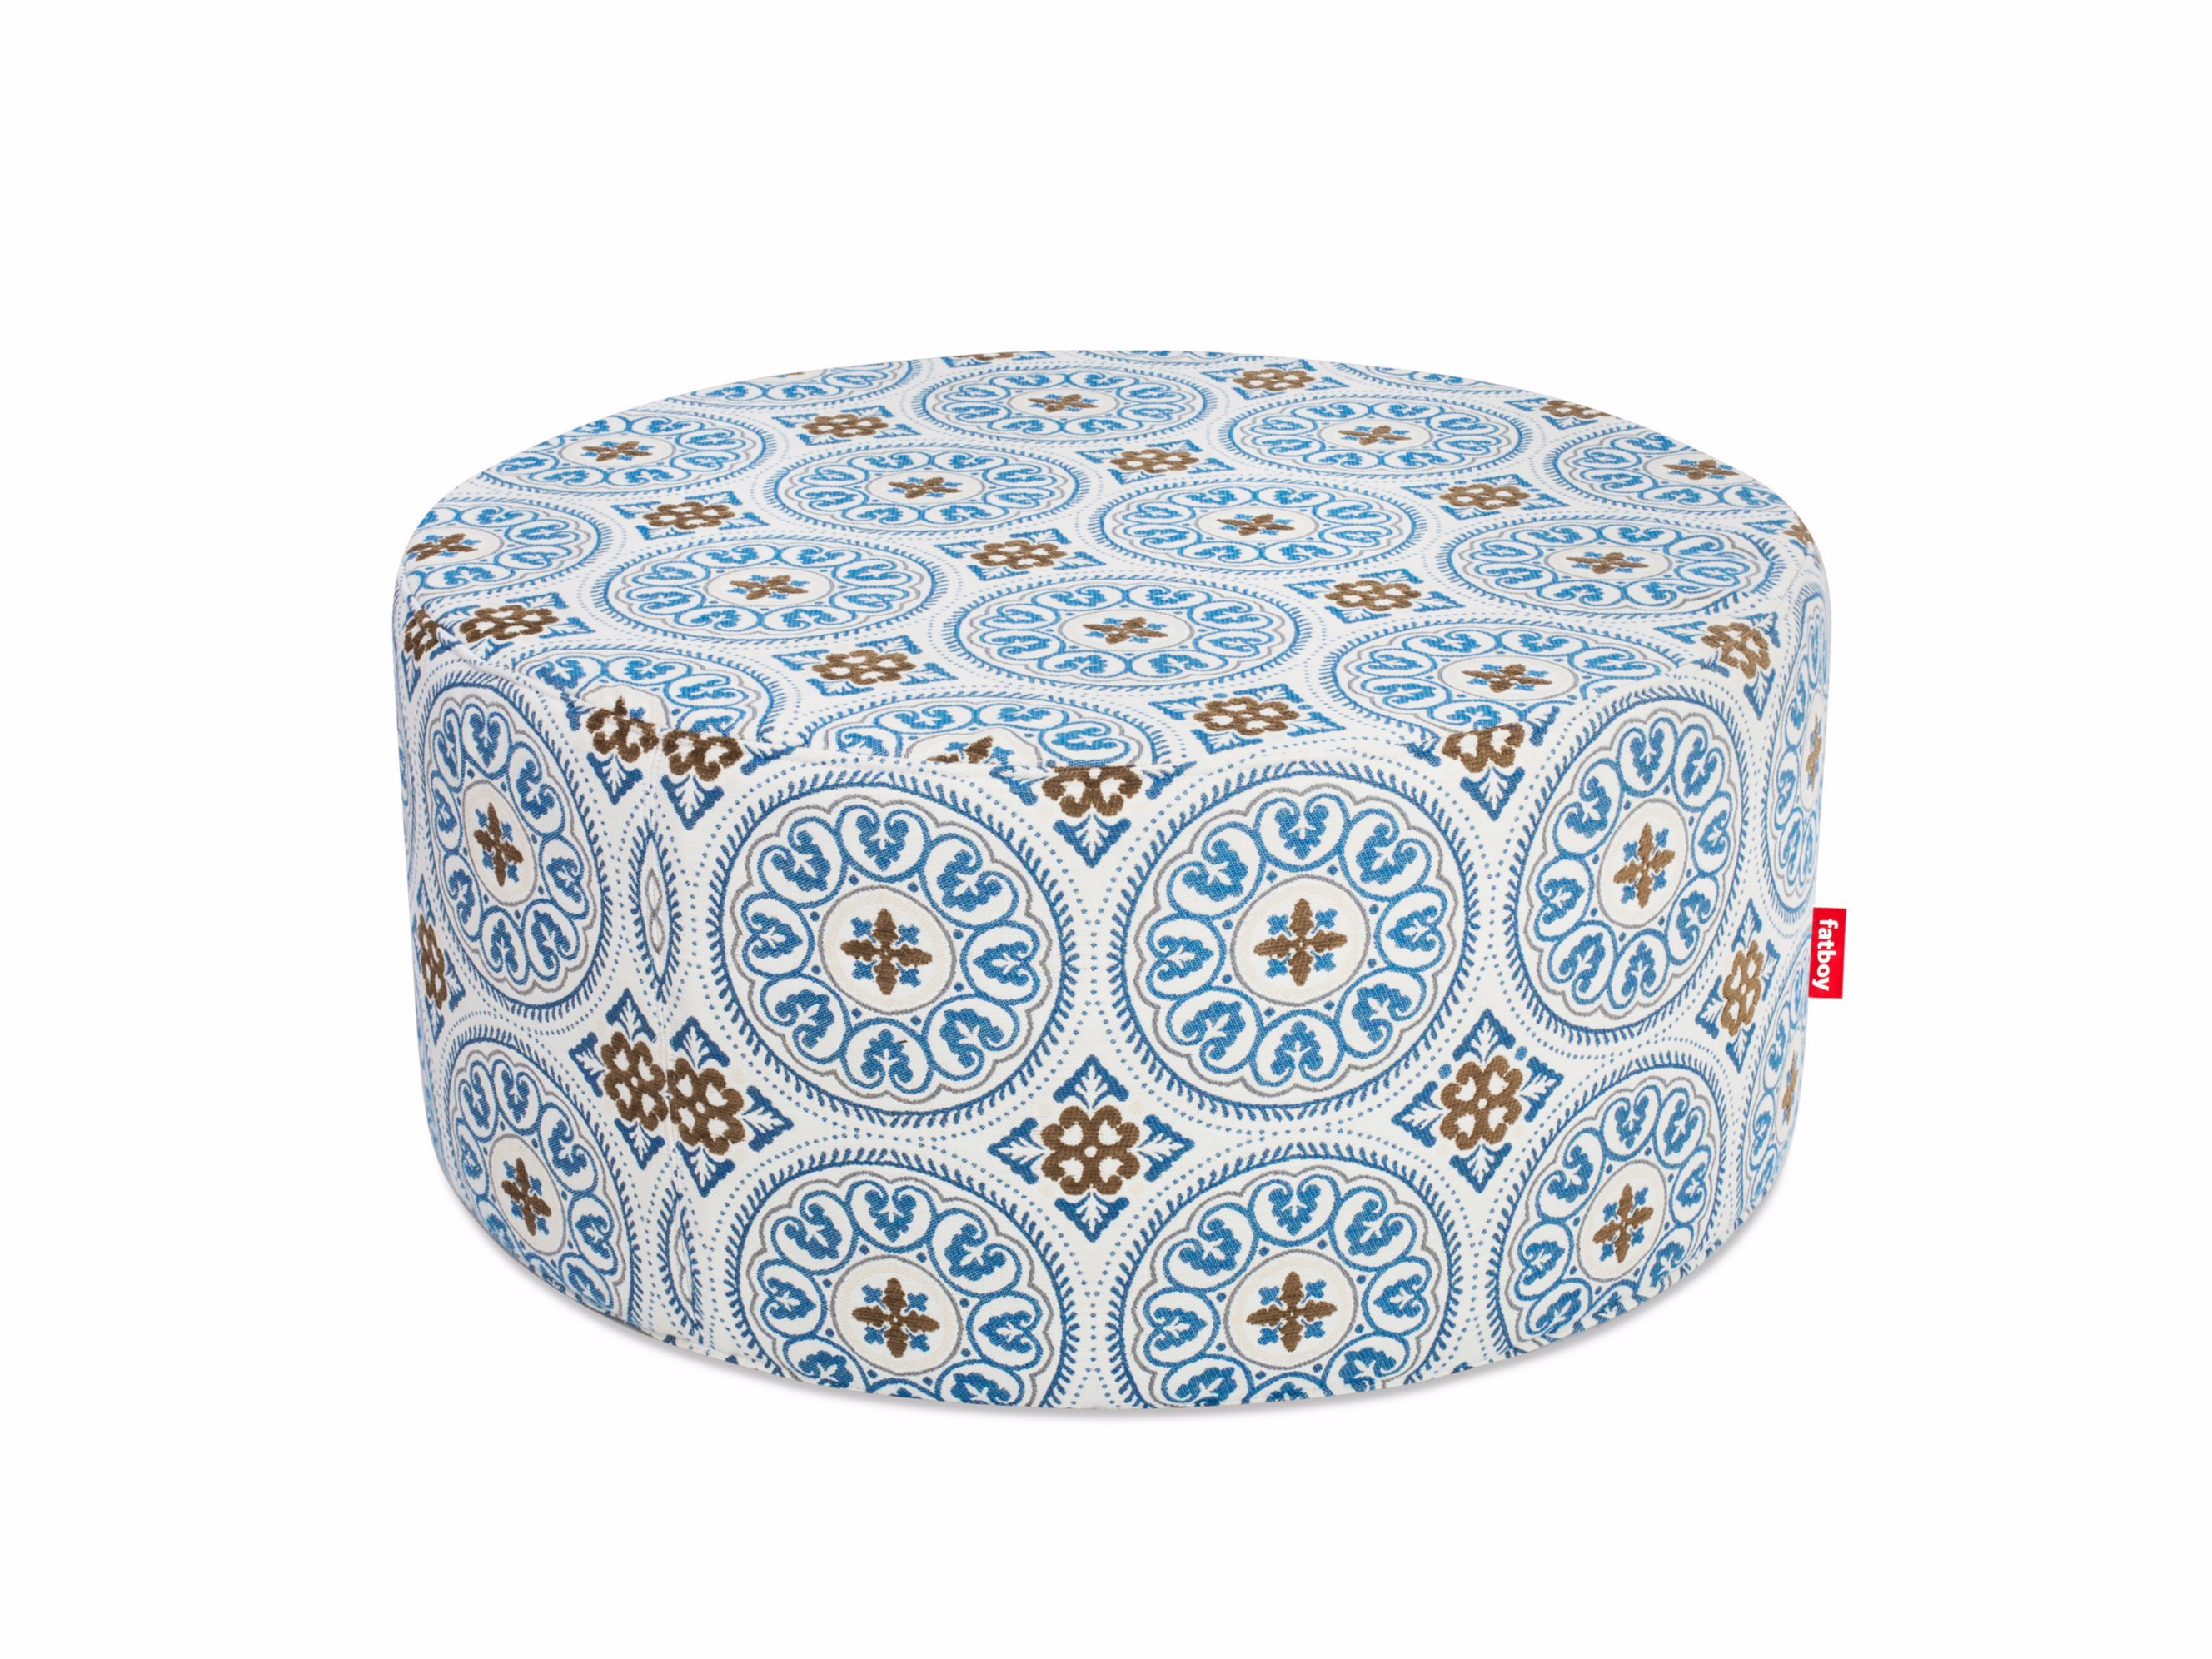 upholstered fabric pouf pfffh by fatboy -